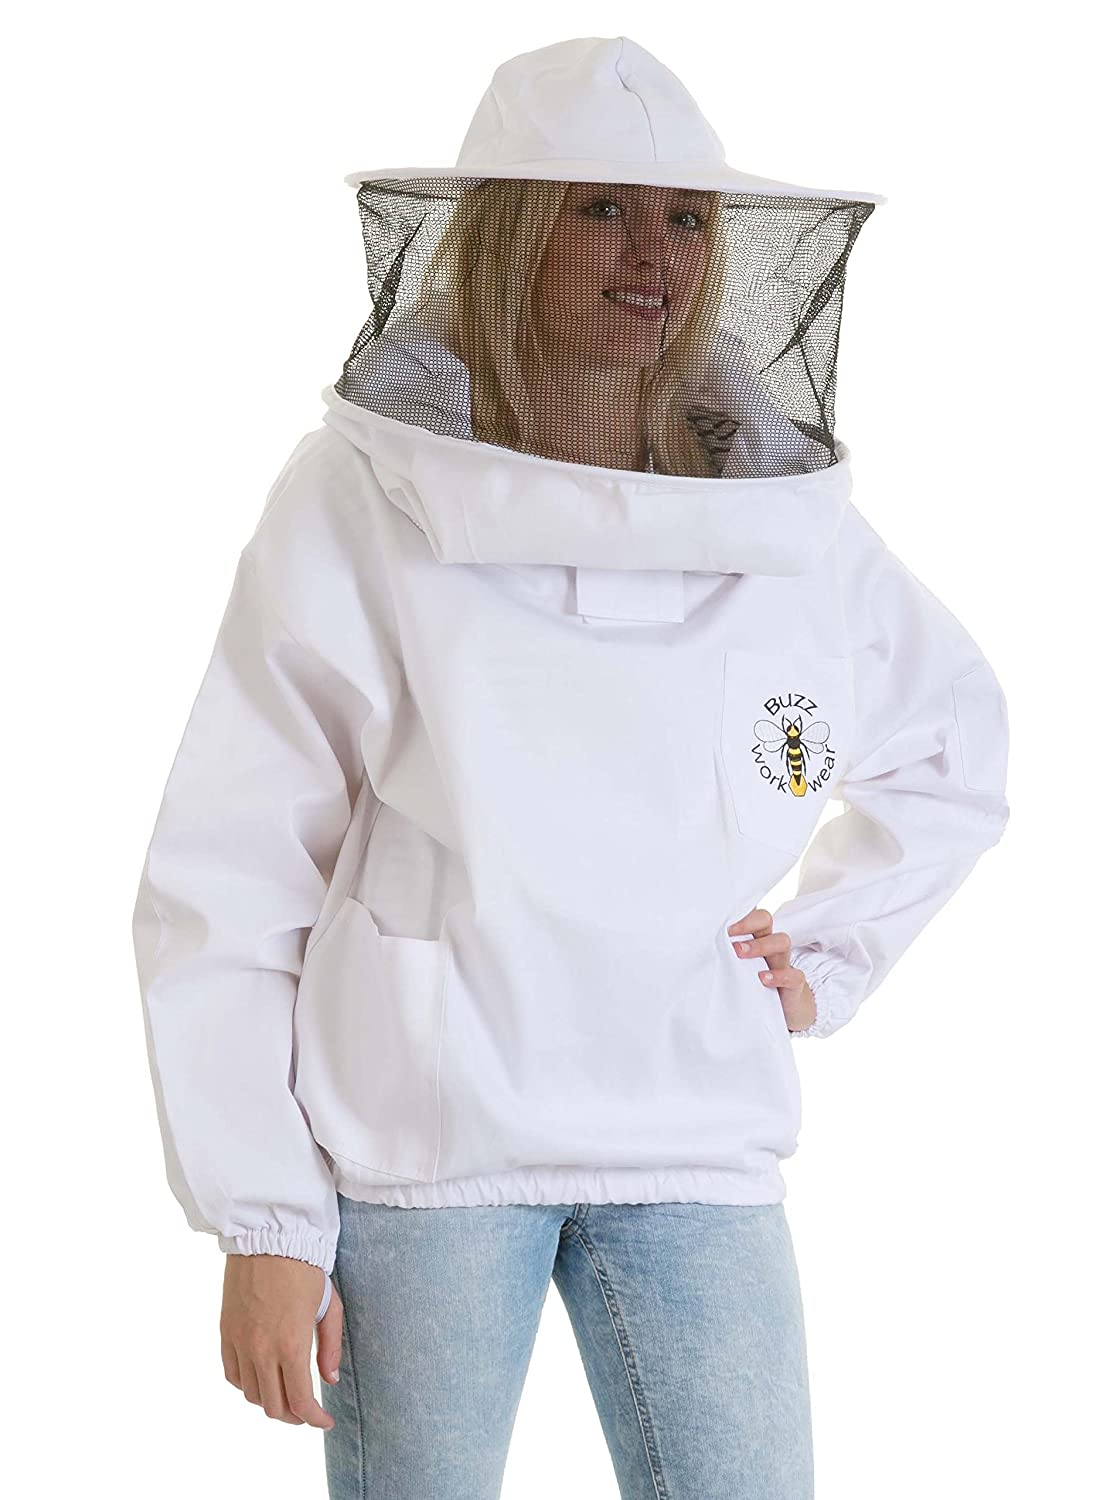 Beekeepers Tunic round hat - All sizes (Small) simonthebeekeeper